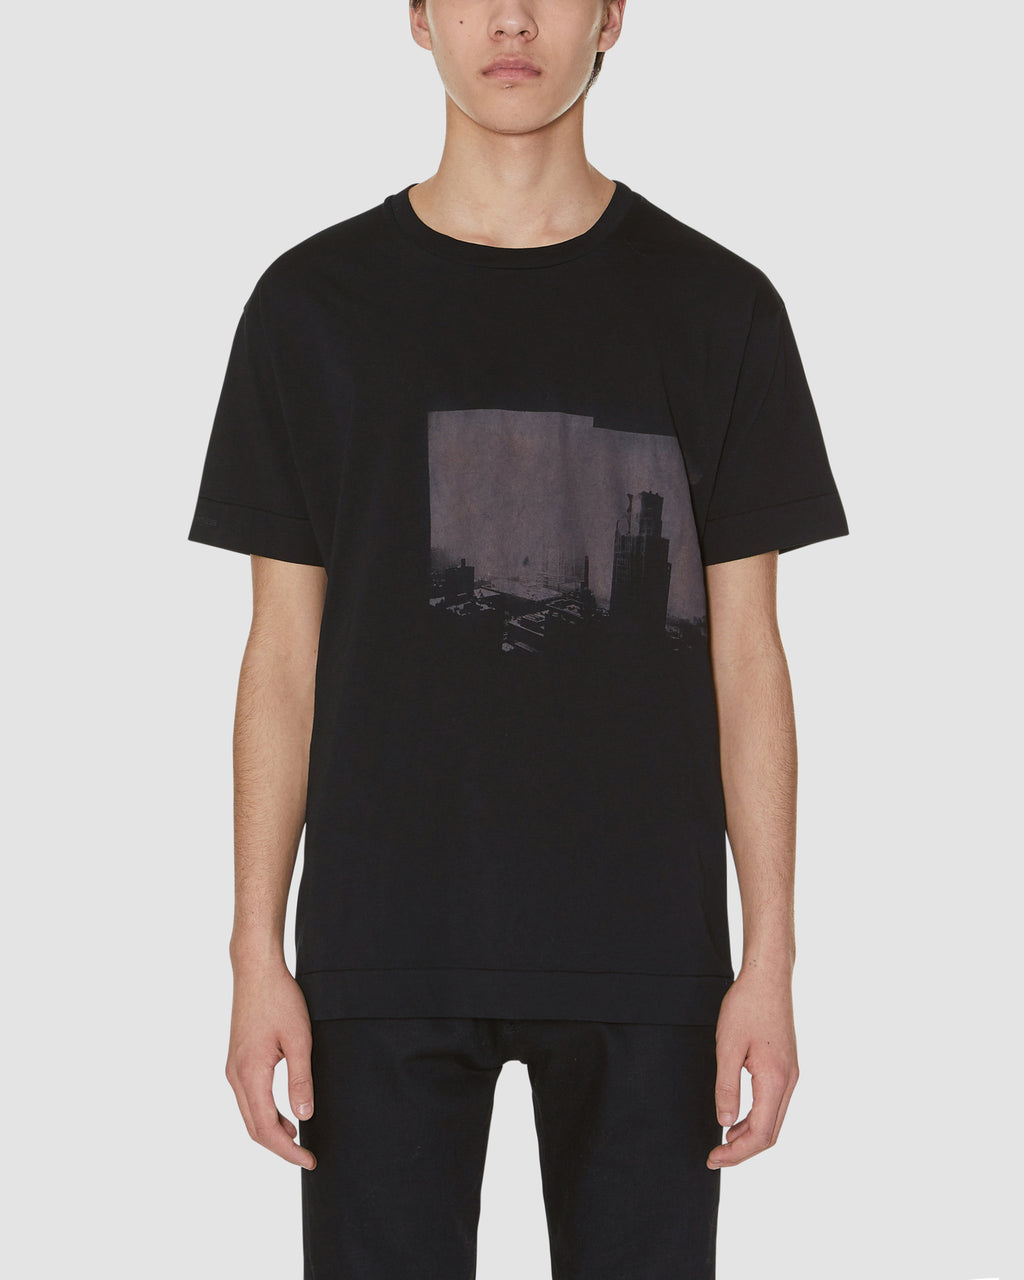 ORANGE CITY SCAPE THORN TEE